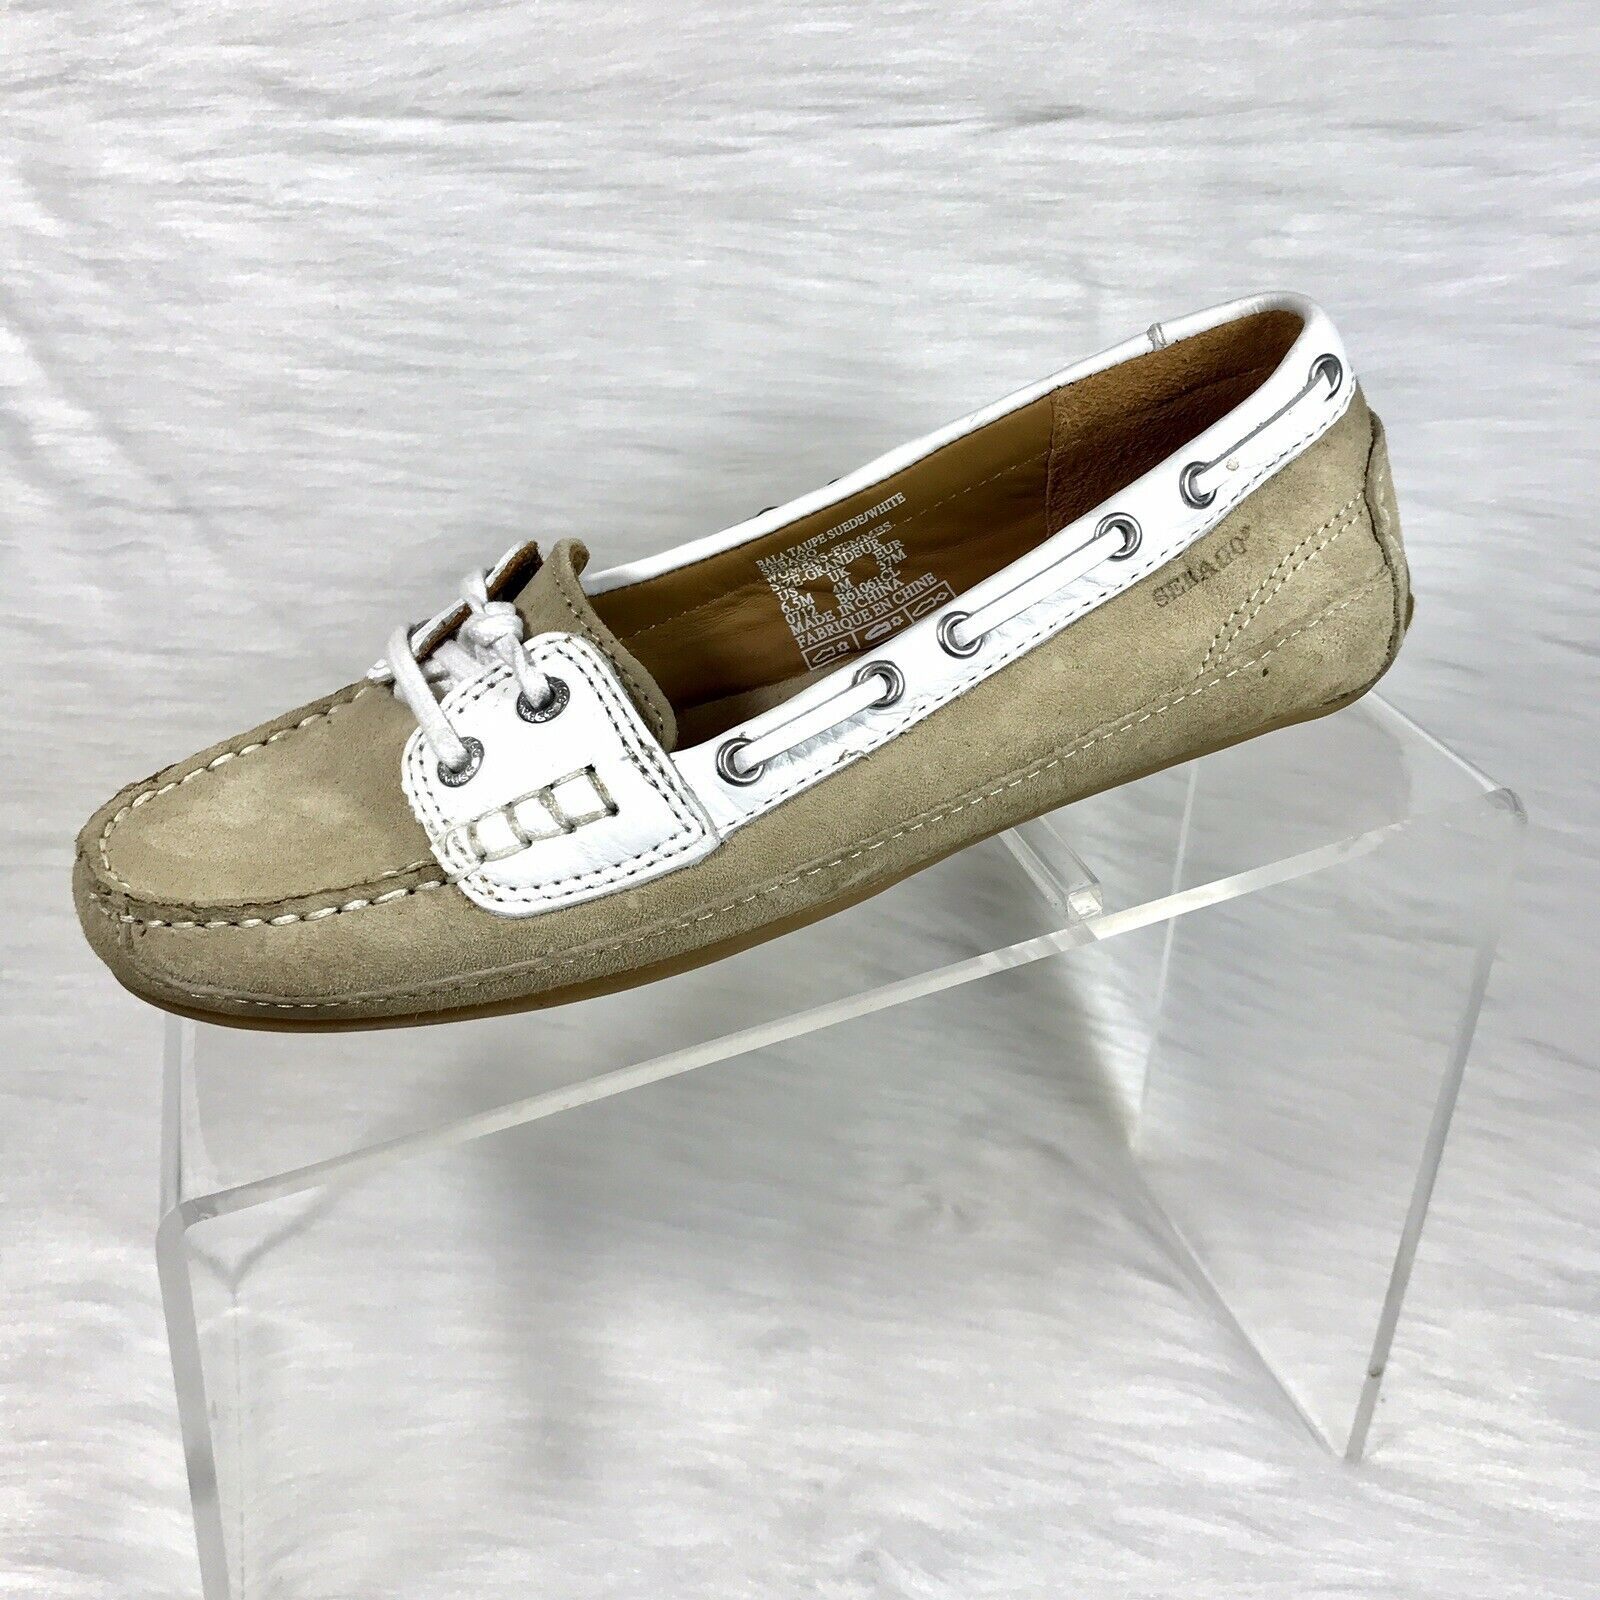 Sebago Womens Boat shoes Size 6.5 M Beige  White Suede